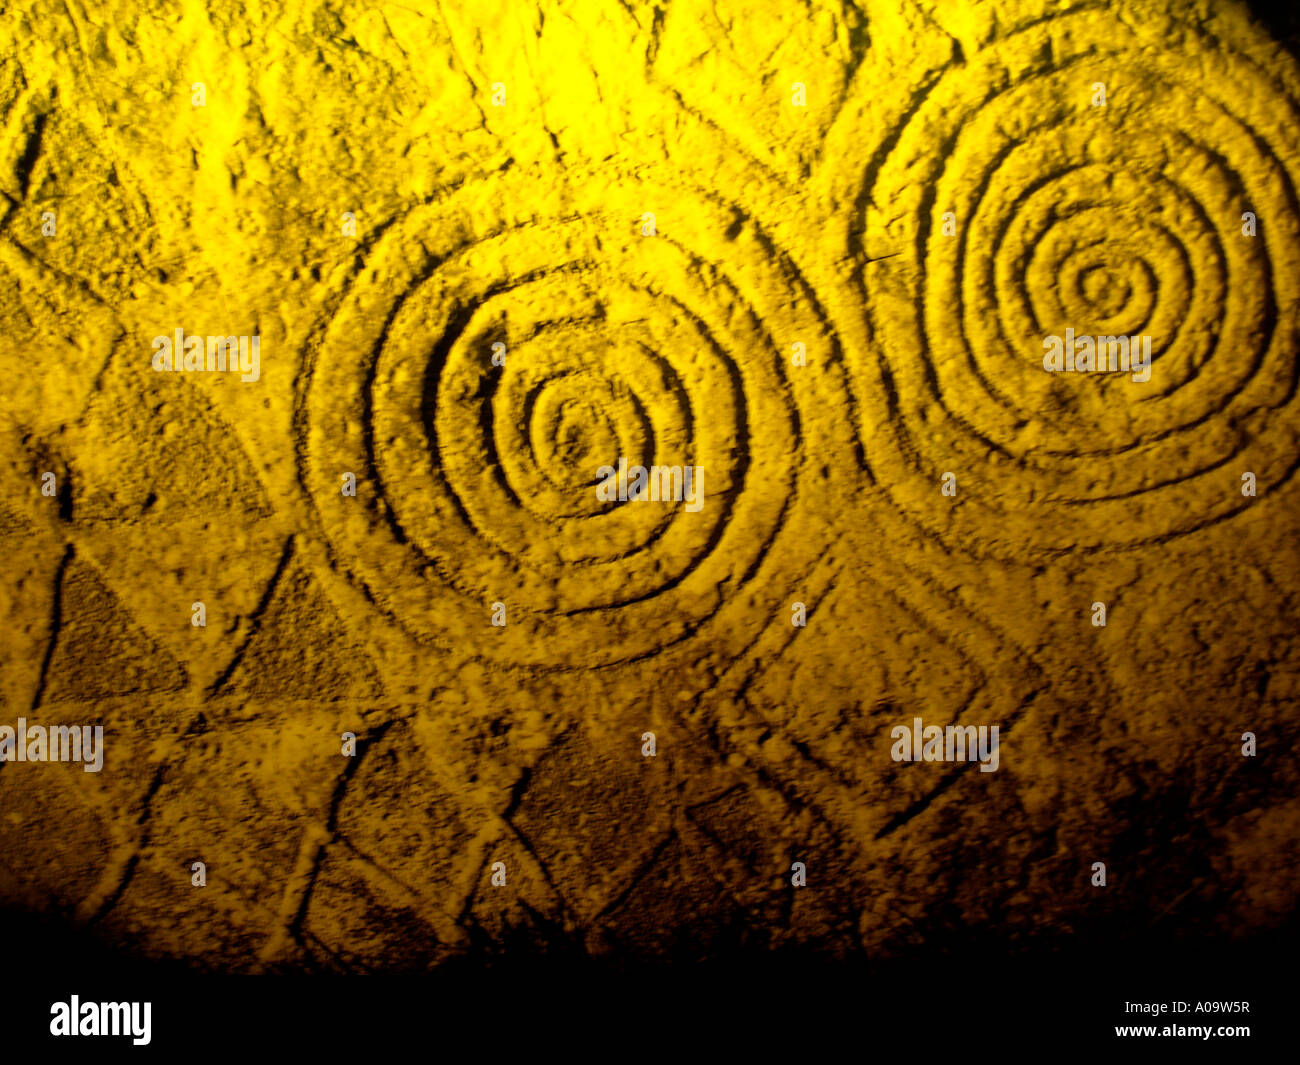 Neolithic graphics County Meath Newgrange Ireland - Stock Image